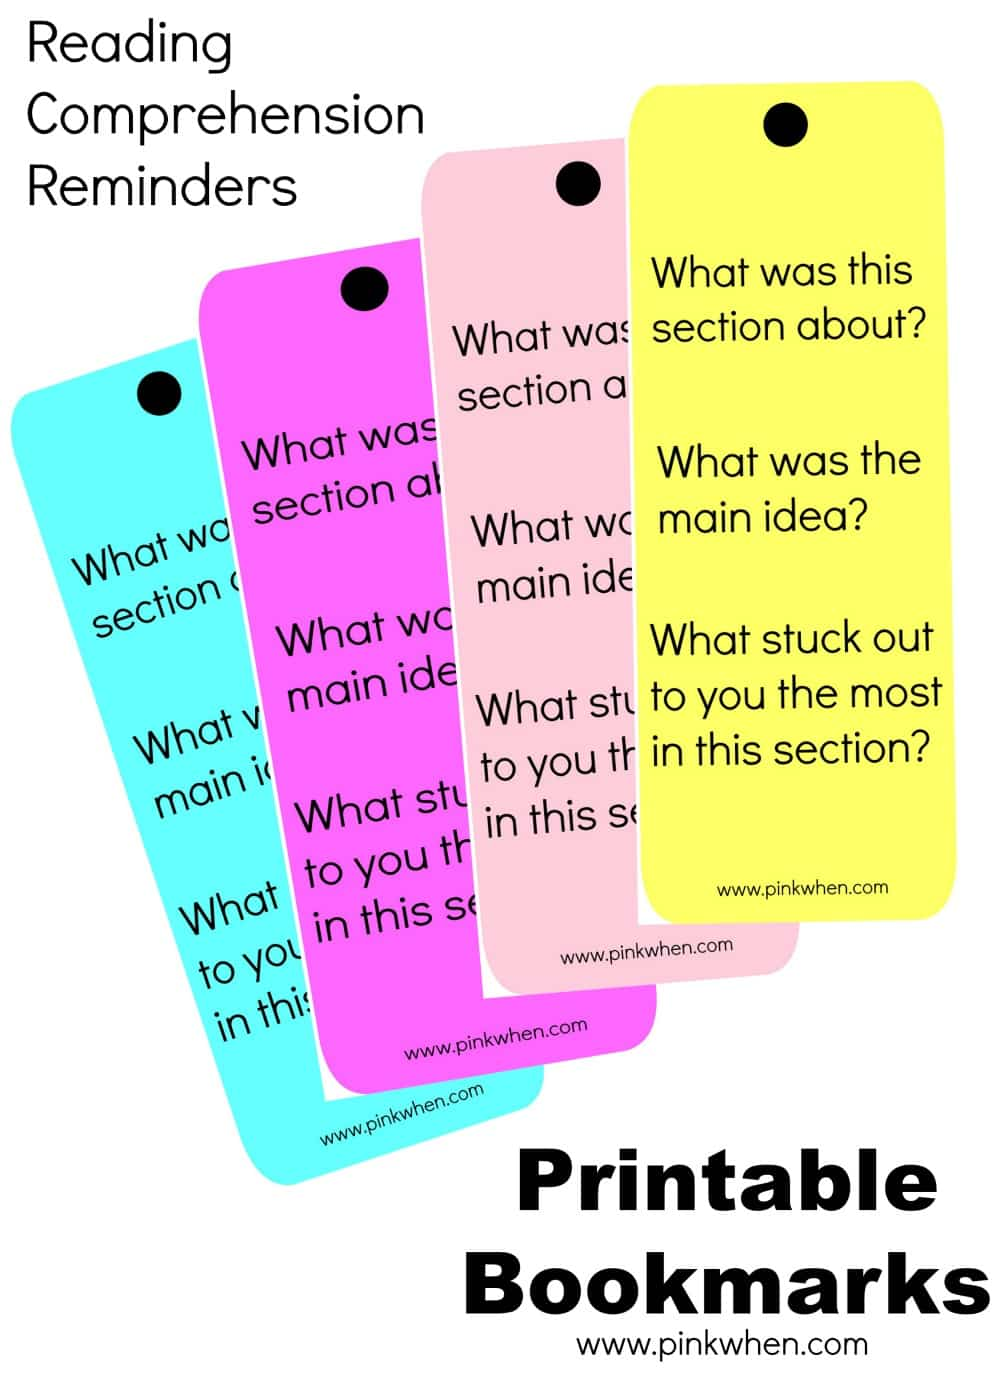 Worksheet Reading Comprehension Questions reading comprehension bookmark reminders printables pinkwhen reminders